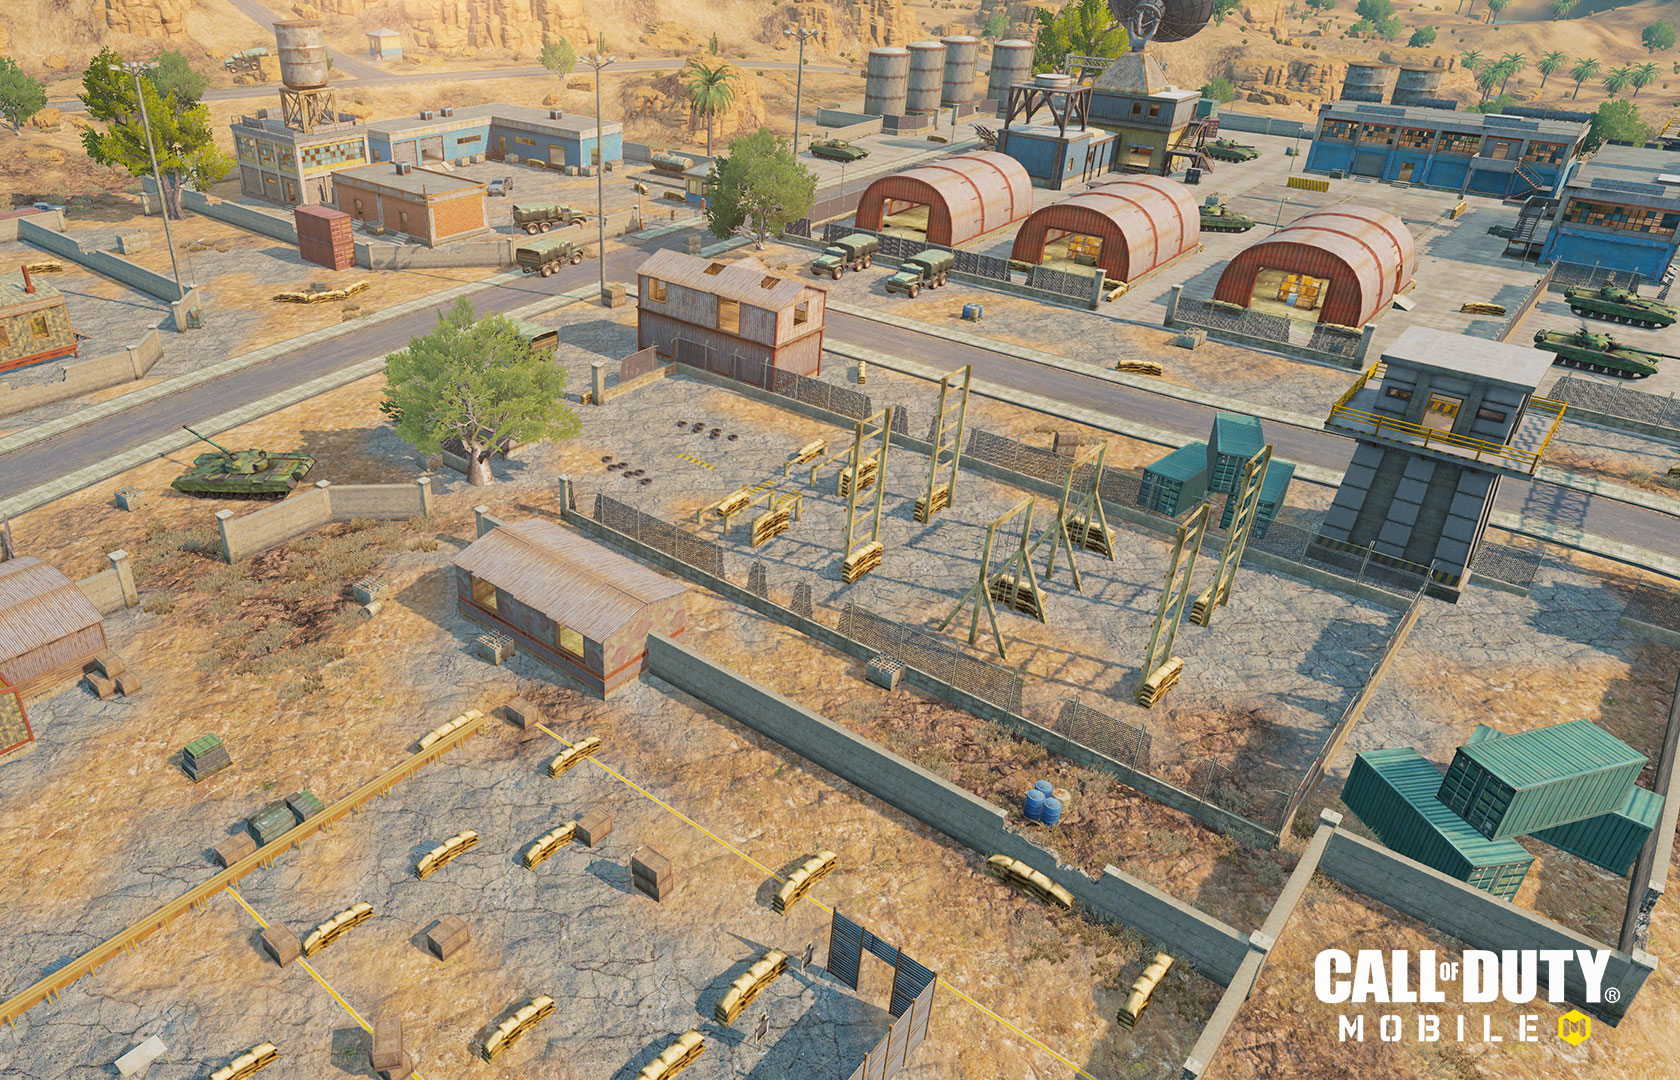 Call of Duty® Mobile: Unlock the New Poltergeist Battle Royale Class - Image 1